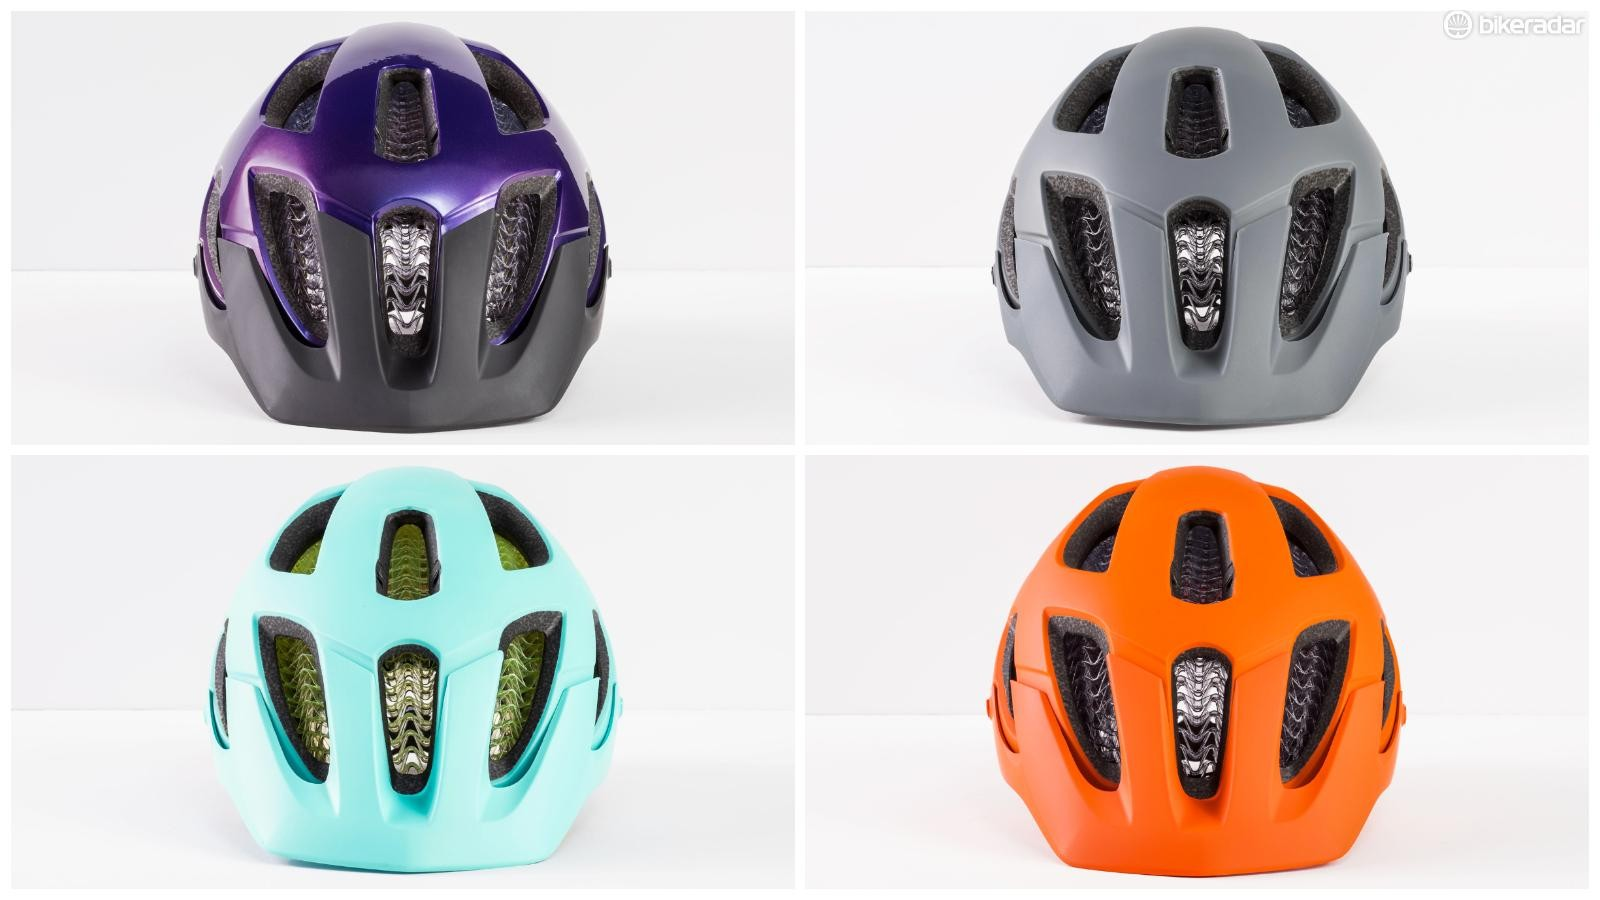 The Blaze is available in a number of colours